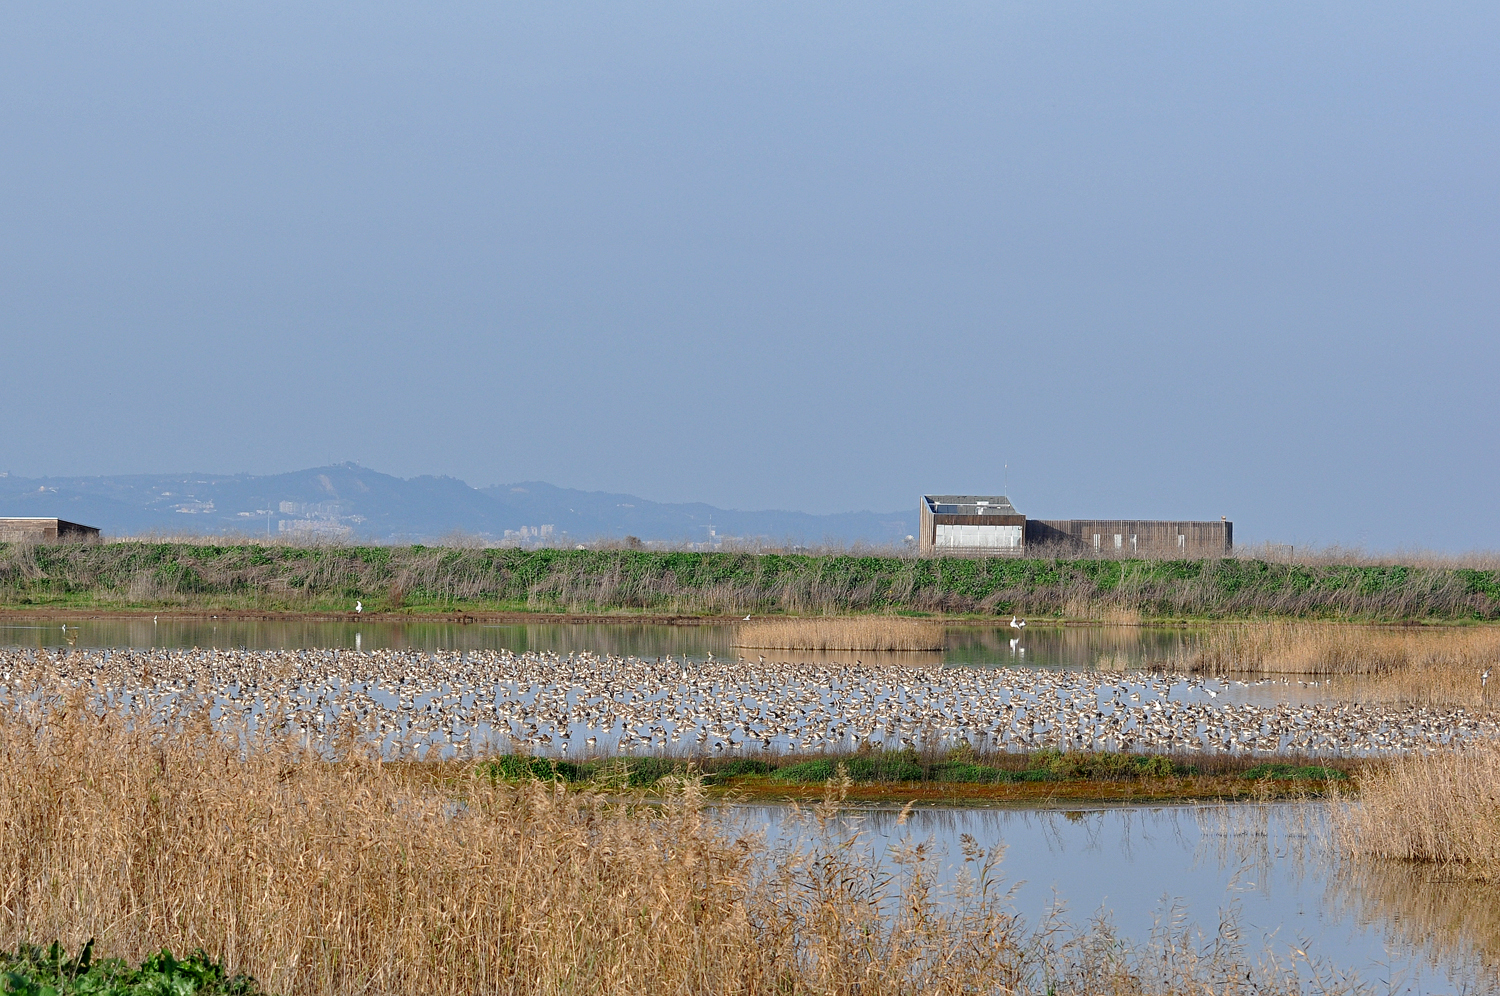 Disembarked birdwatching in the Tagus Estuary Natural Reserve